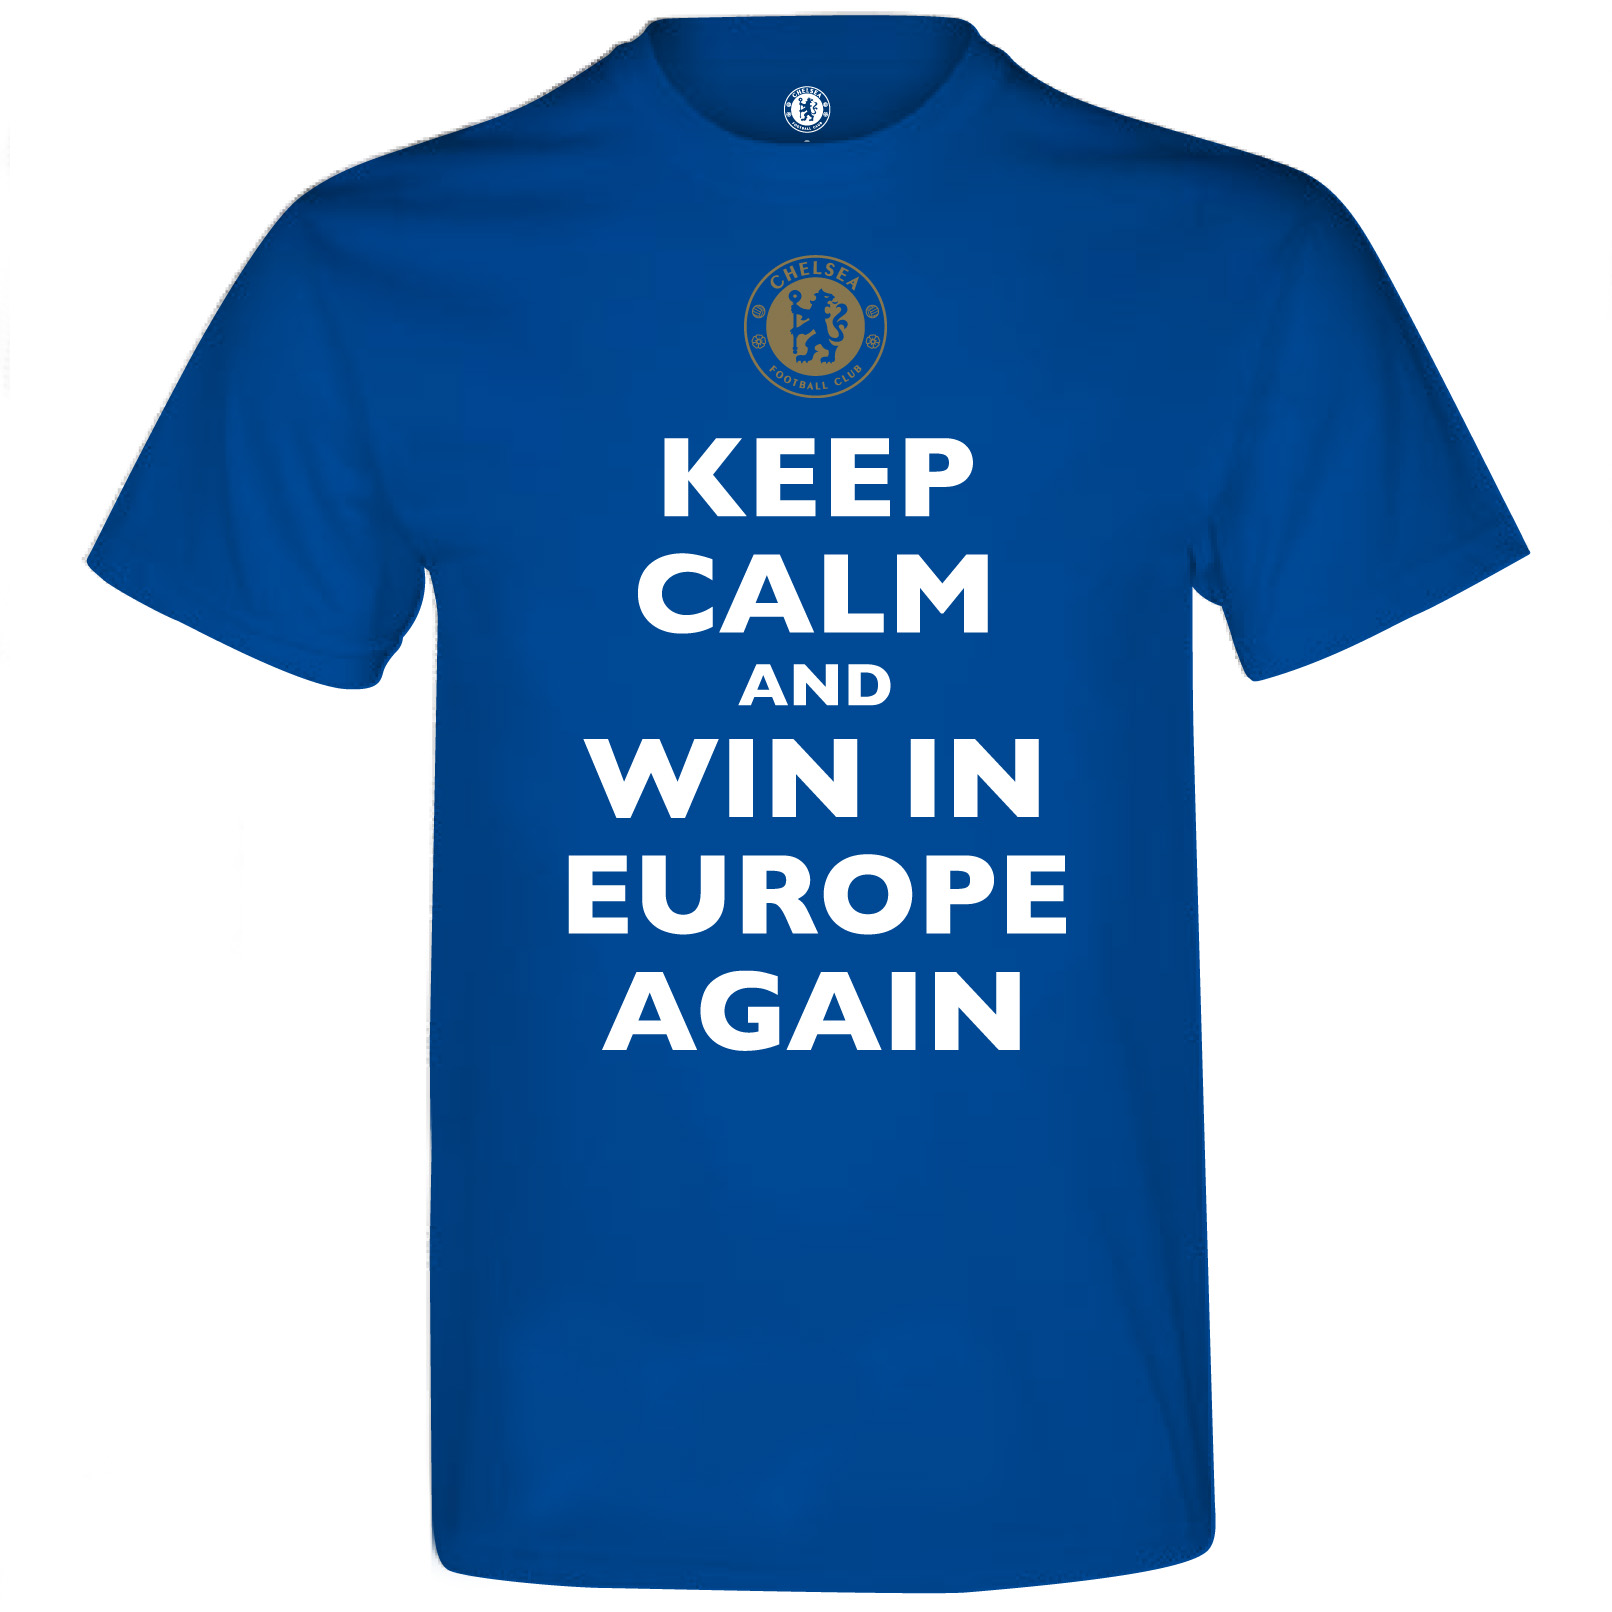 Chelsea Europa Winners Keep Calm T-Shirt - Mens Royal Blue